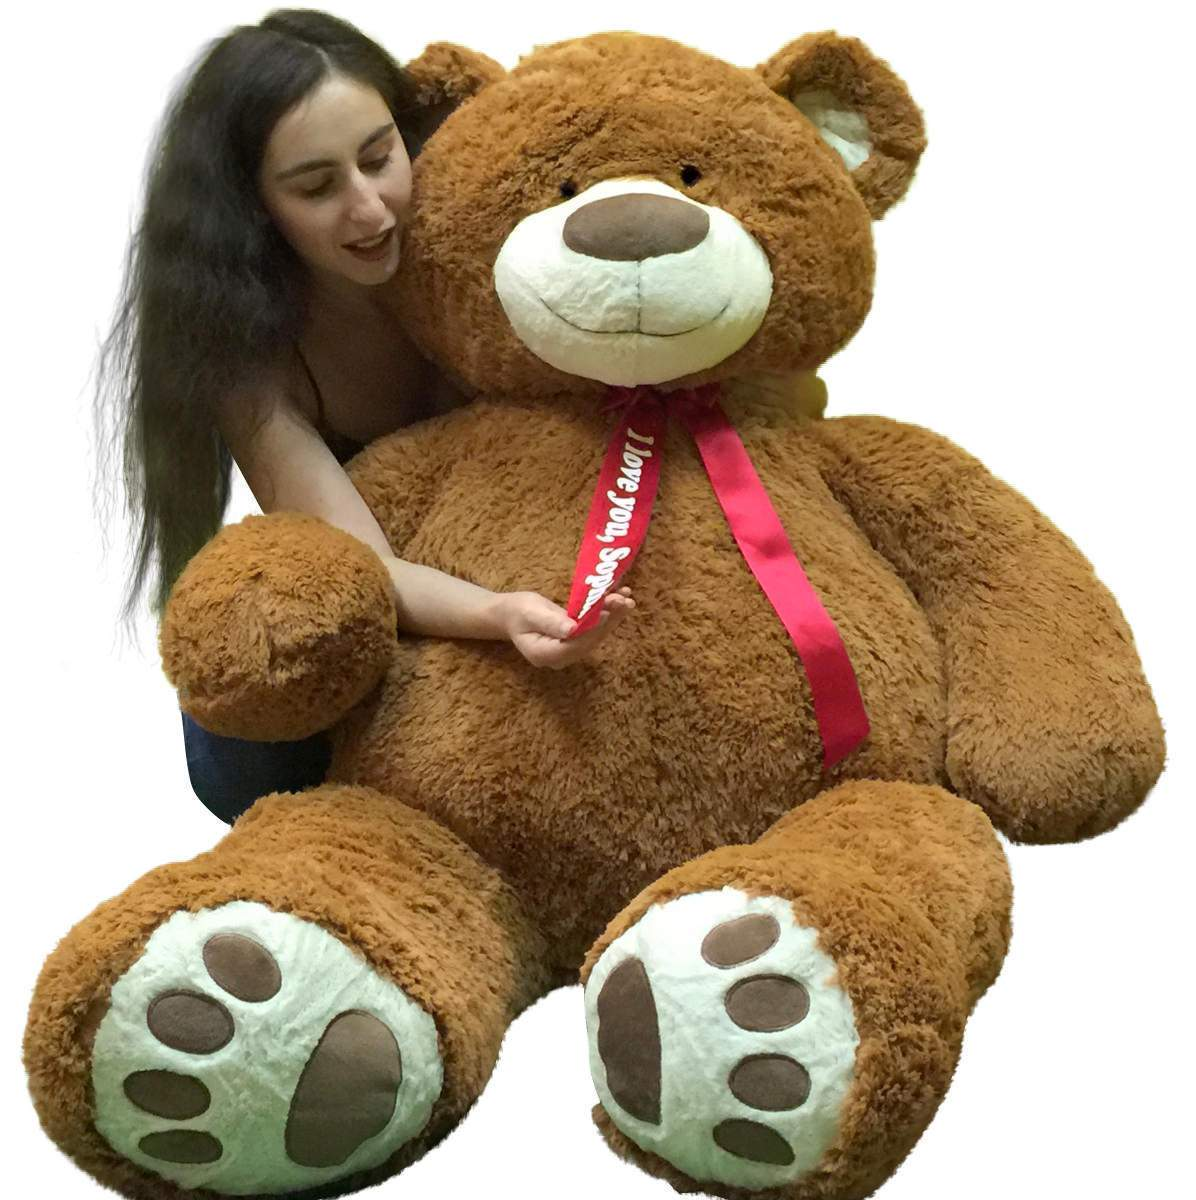 Personalized 5 Foot Very Big Smiling Teddy Bear Five Feet Tall Cookie Dough Brown Color with